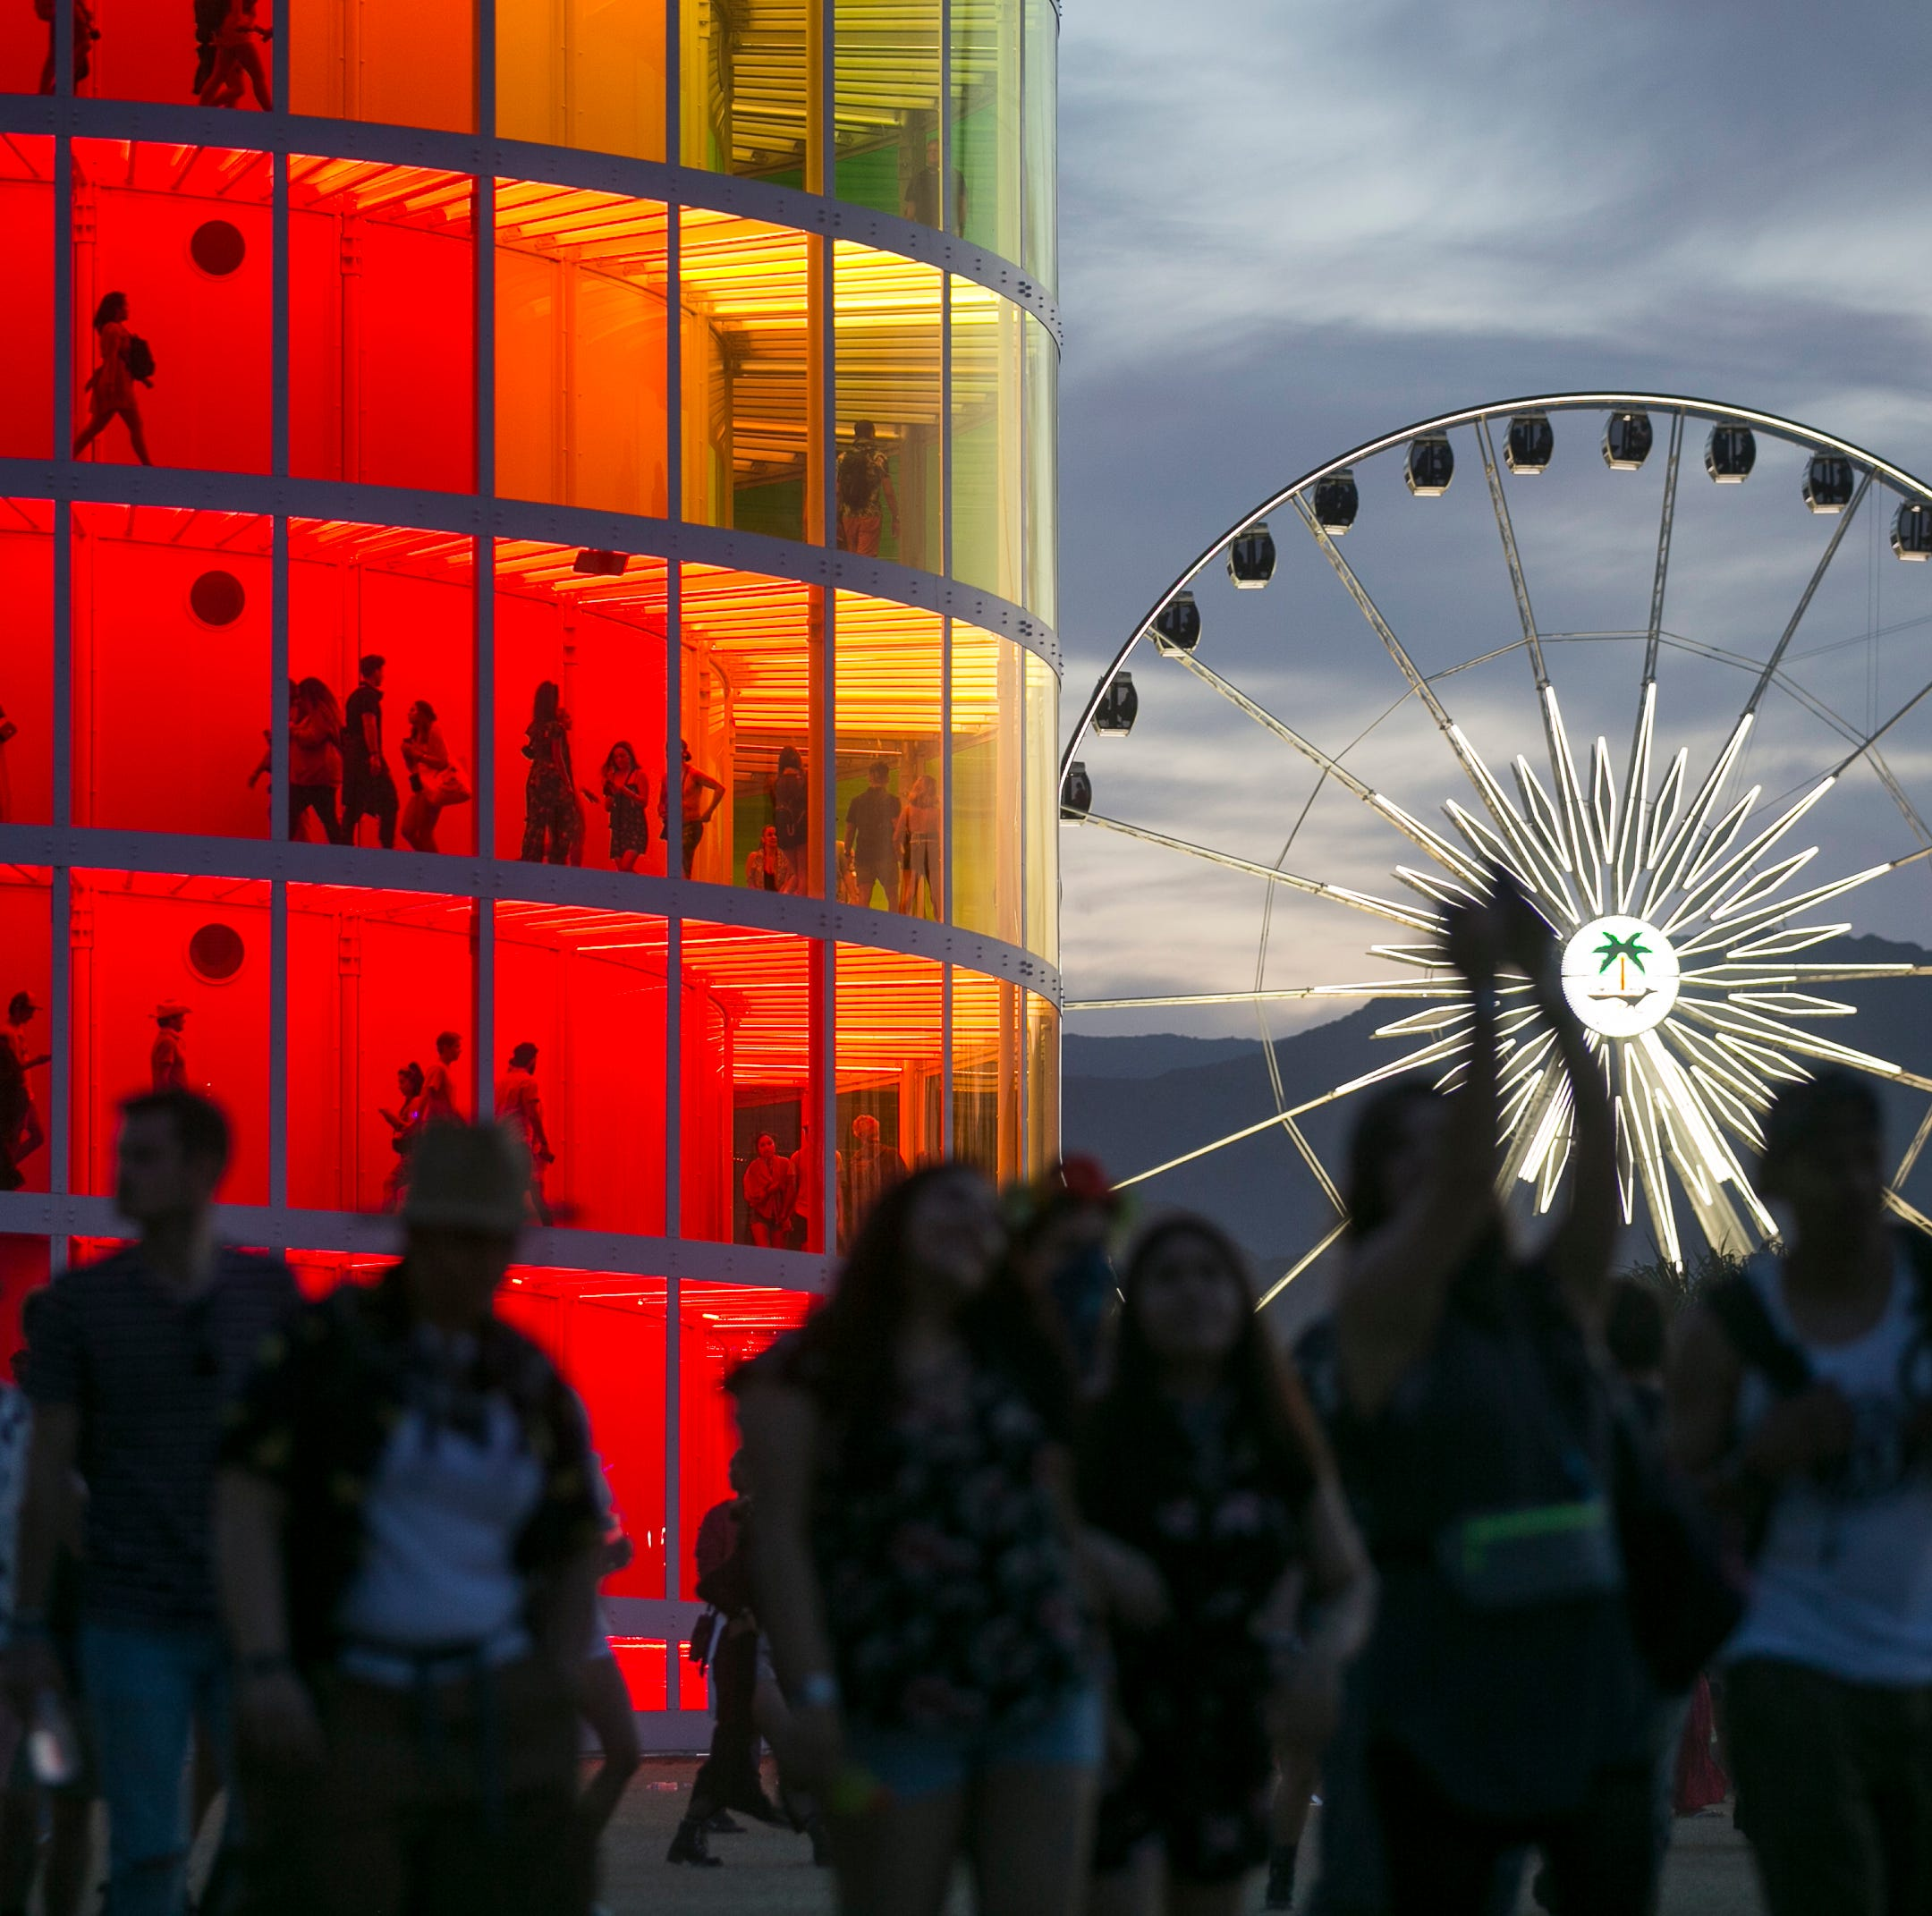 Cheap festival passes, lower hotel occupancy and more signs Coachella might be a little slower this year